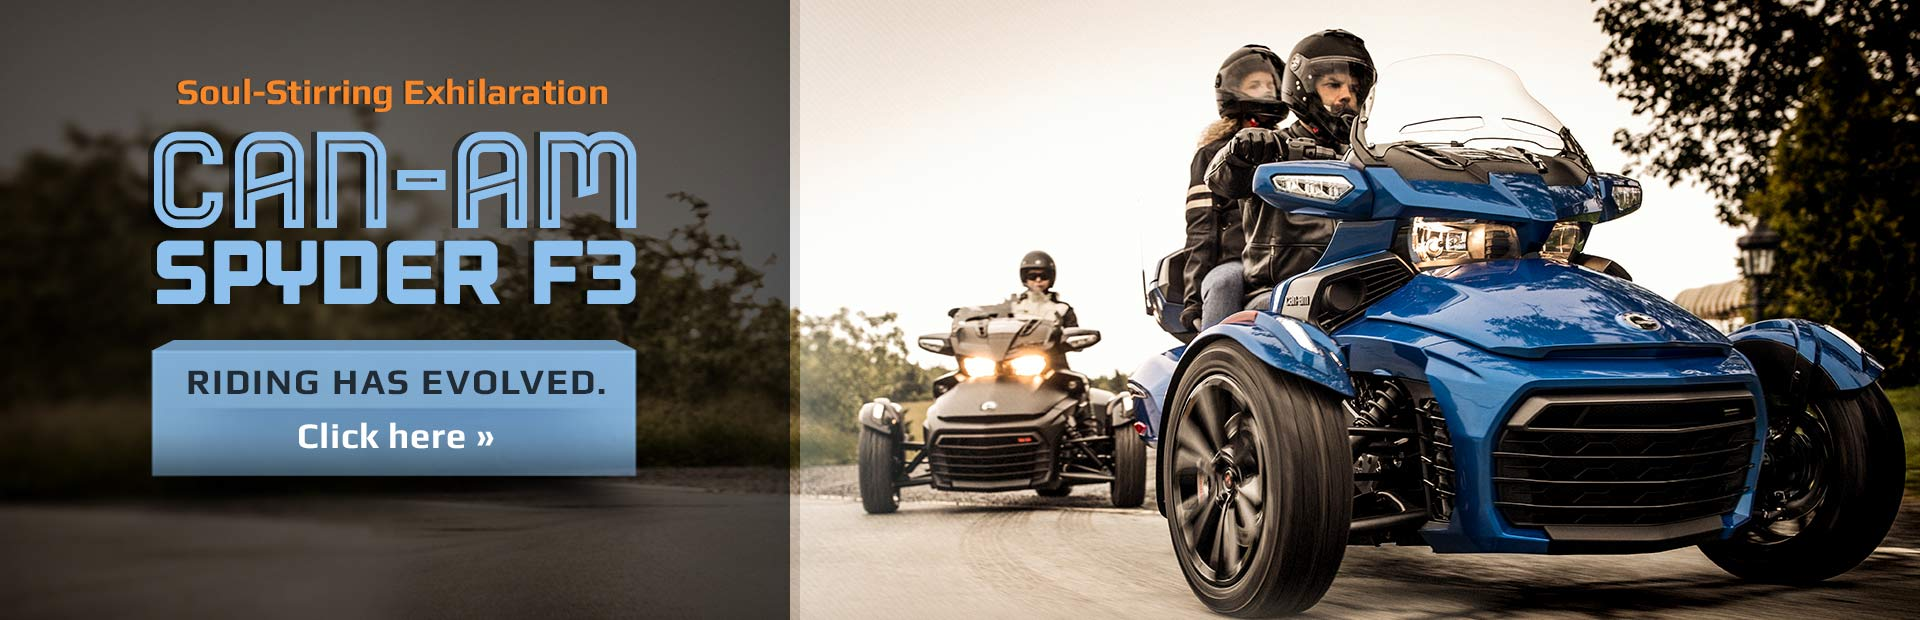 Can-Am Spyder F3: Click here to view the model.